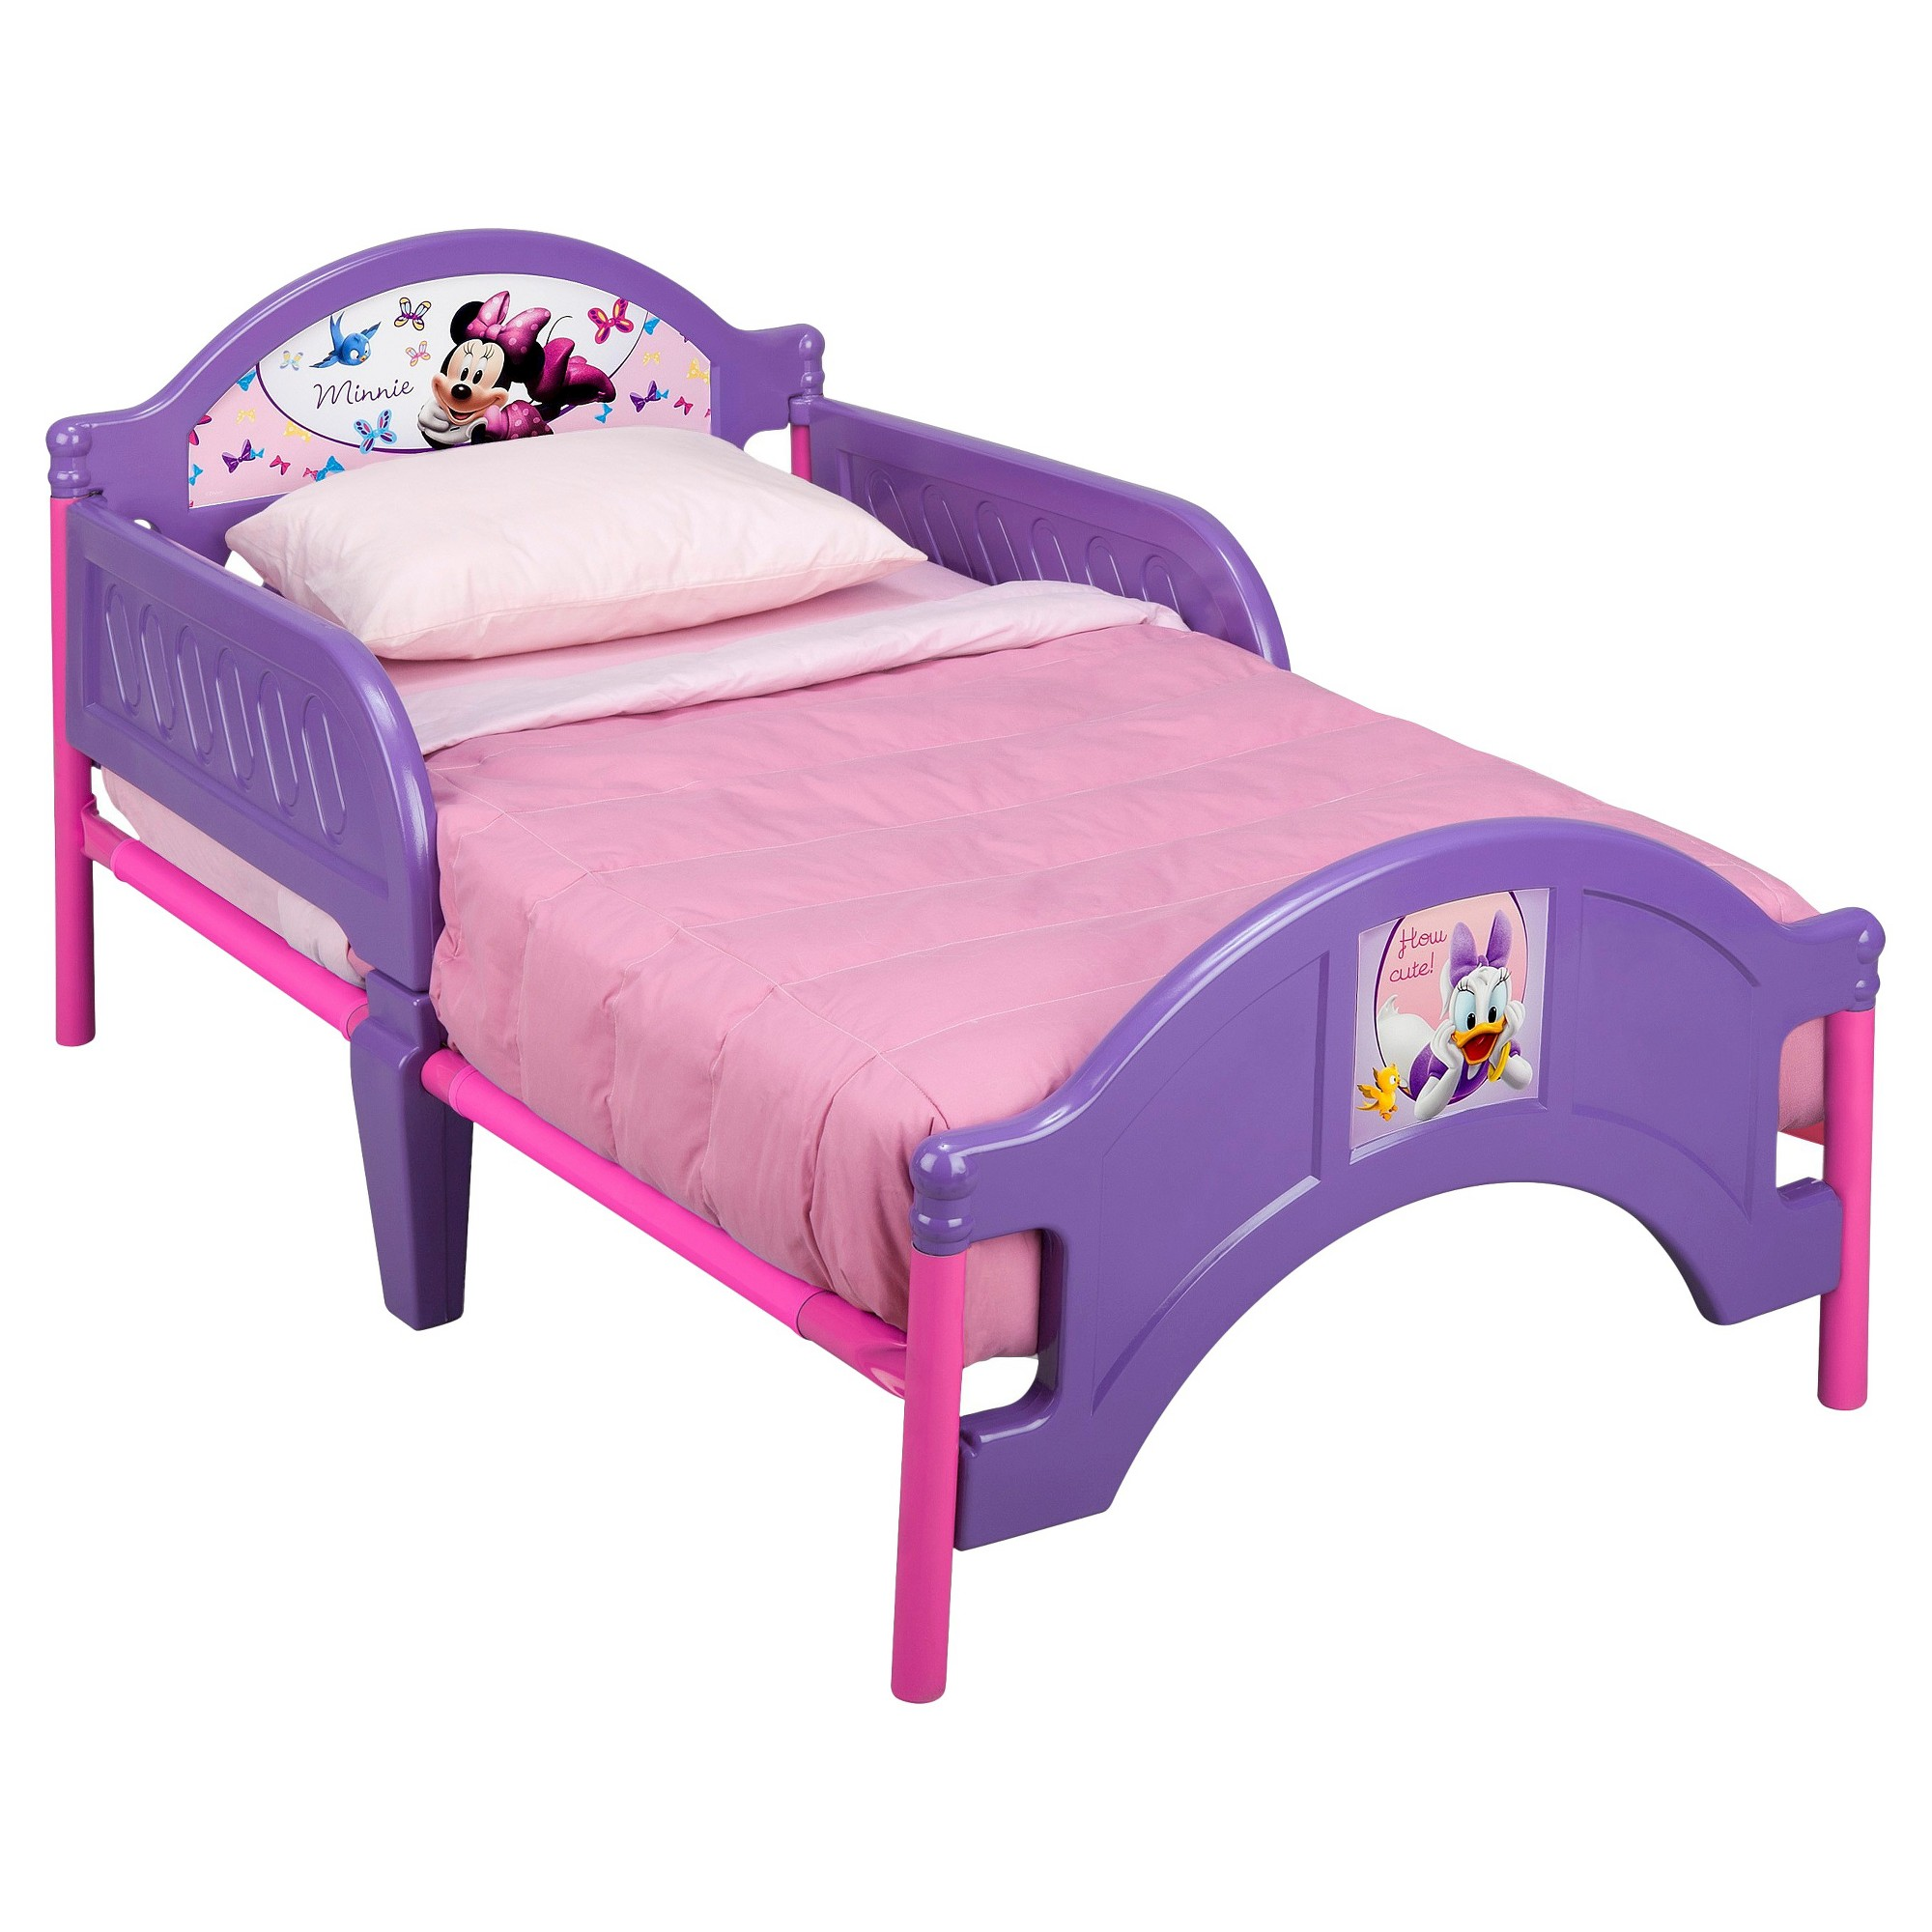 Best Delta Minnie Mouse Toddler Bed Toddler Bed Toddler Bed 640 x 480